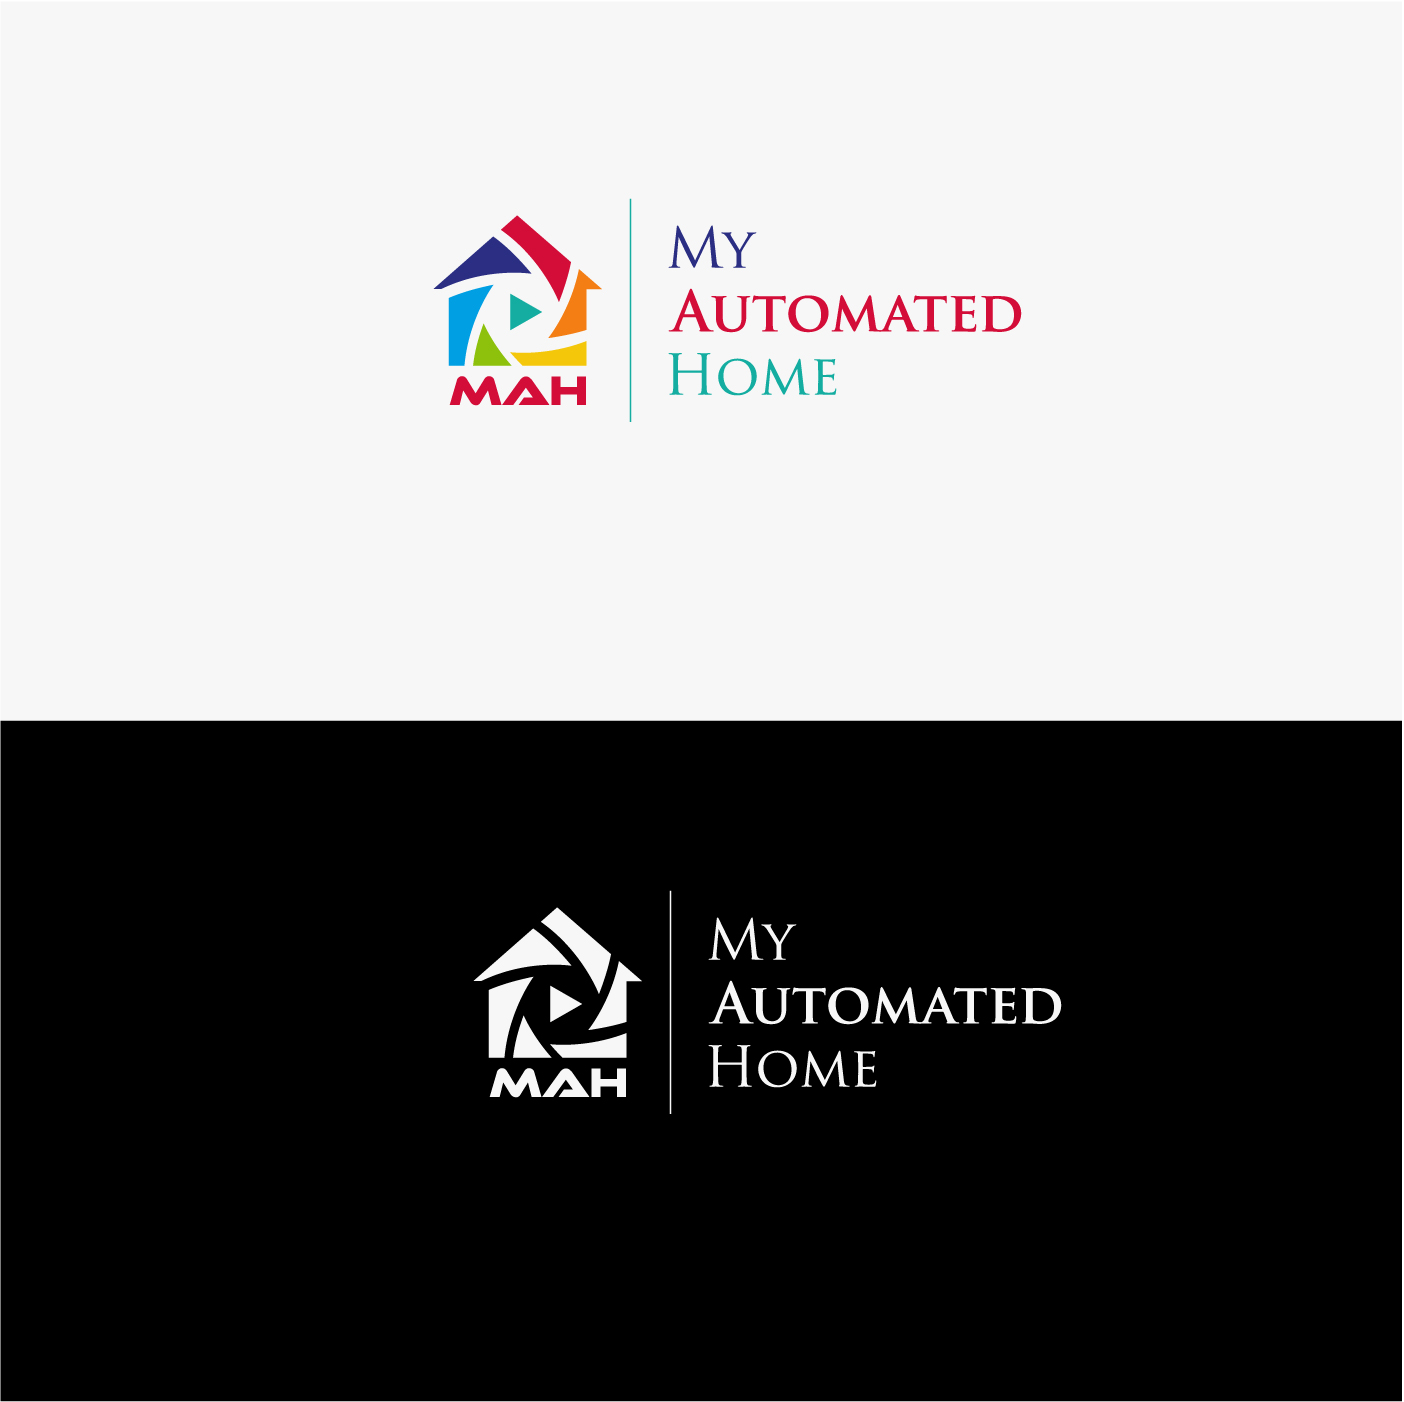 Modern Personable Logo Design For My Automated Home Or Mah By